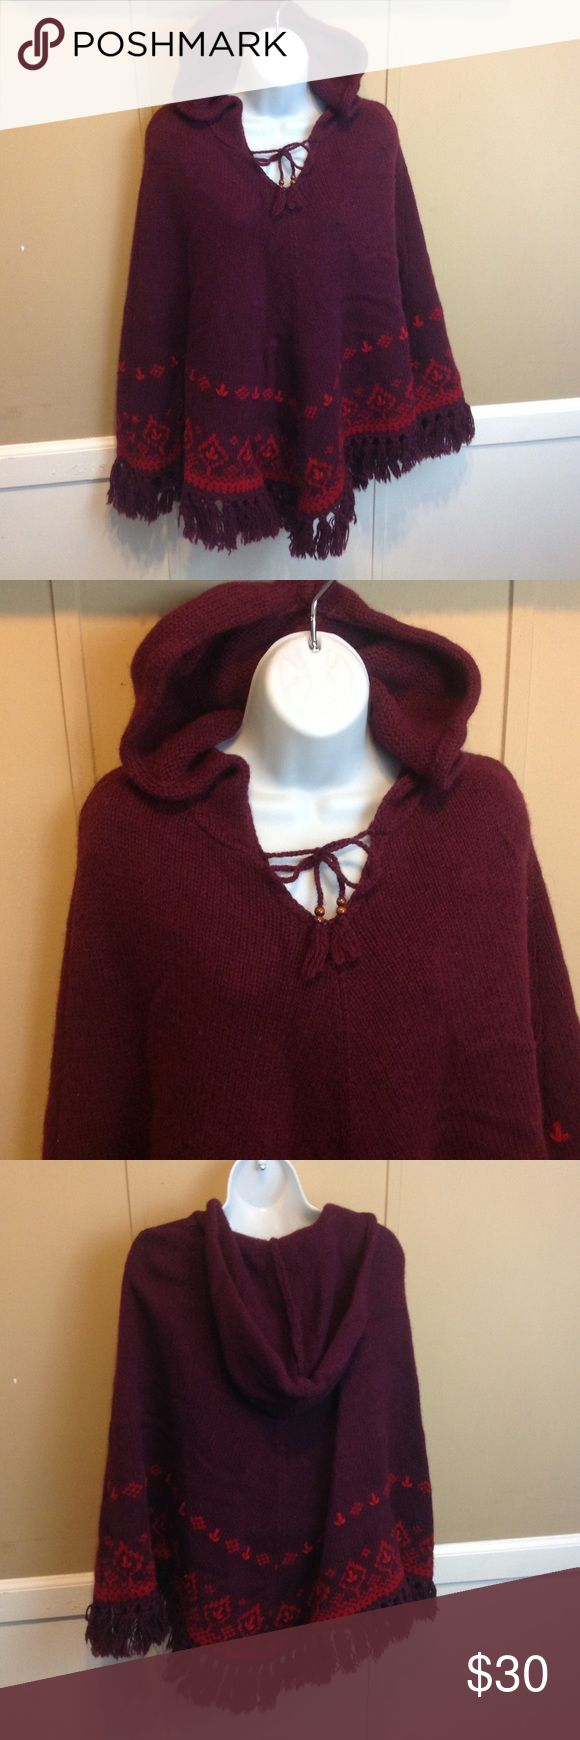 """American Eagle Wool Hooded Shawl Maker: American Eagle Outiftters ♥ Material: Shetland Wool ♥ Color: Burgundy ♥ Measured Size: Pit to pit- n/a Pit to cuff- n/a Shoulder to waist-  30""""  ♥ Tag Size:  S/M ♥ Actual Size: S/M PLEASE CHECK YOUR ACTUAL MEASUREMENTS TO MAKE SURE IT IS THE RIGHT SIZE! THANKS! ♥ Condition: Great Used Condition  ♥ Item #: (office use only) F  Follow us on Instagram and facebook for coupon codes!  INSTAGRAM-thehausofvintage1984 Facebook- intergalactic haus of vintage…"""